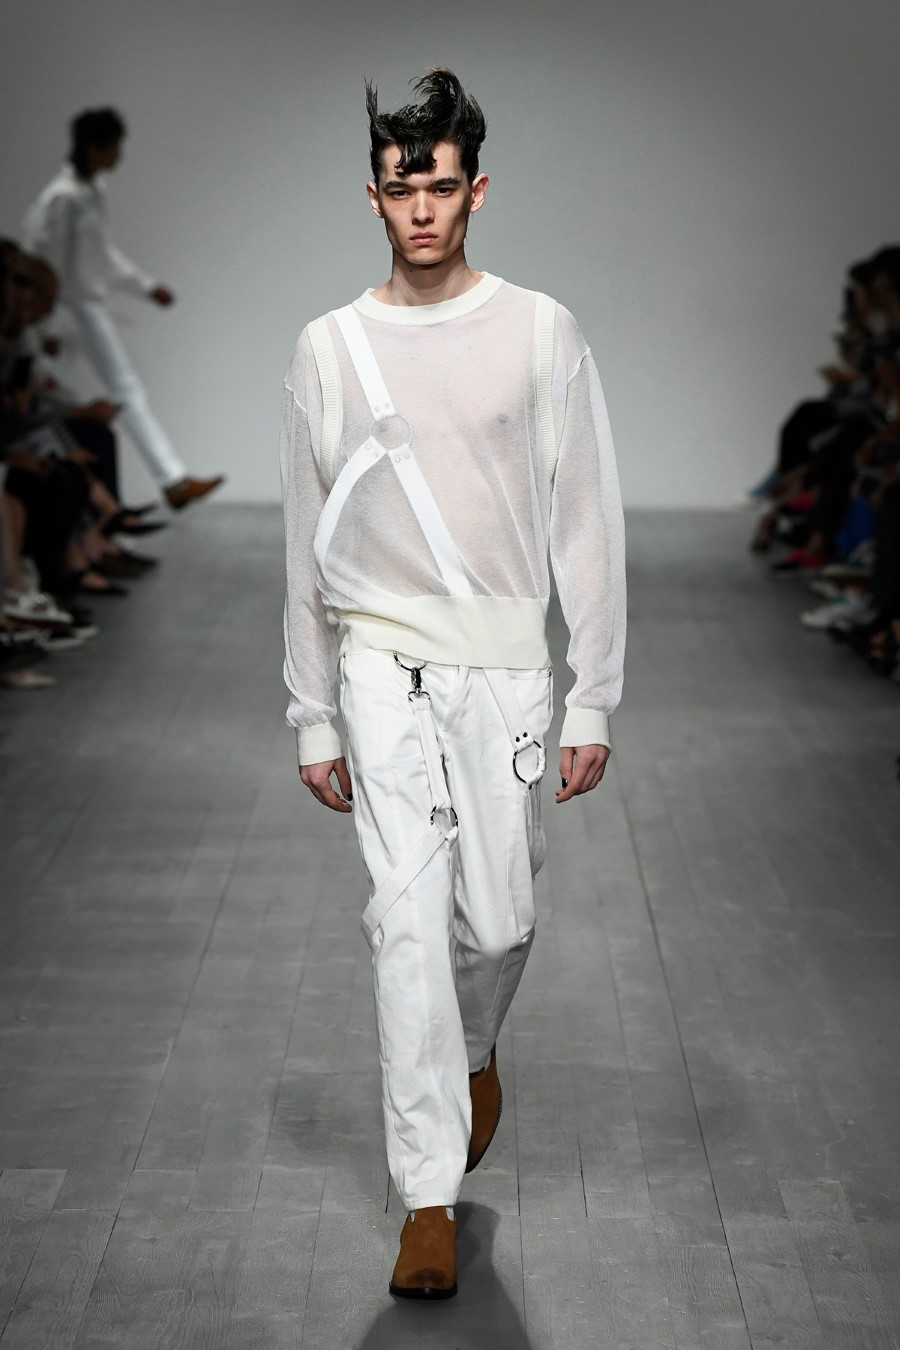 Private Policy Printemps Été 2019 – London Fashion Week Men's